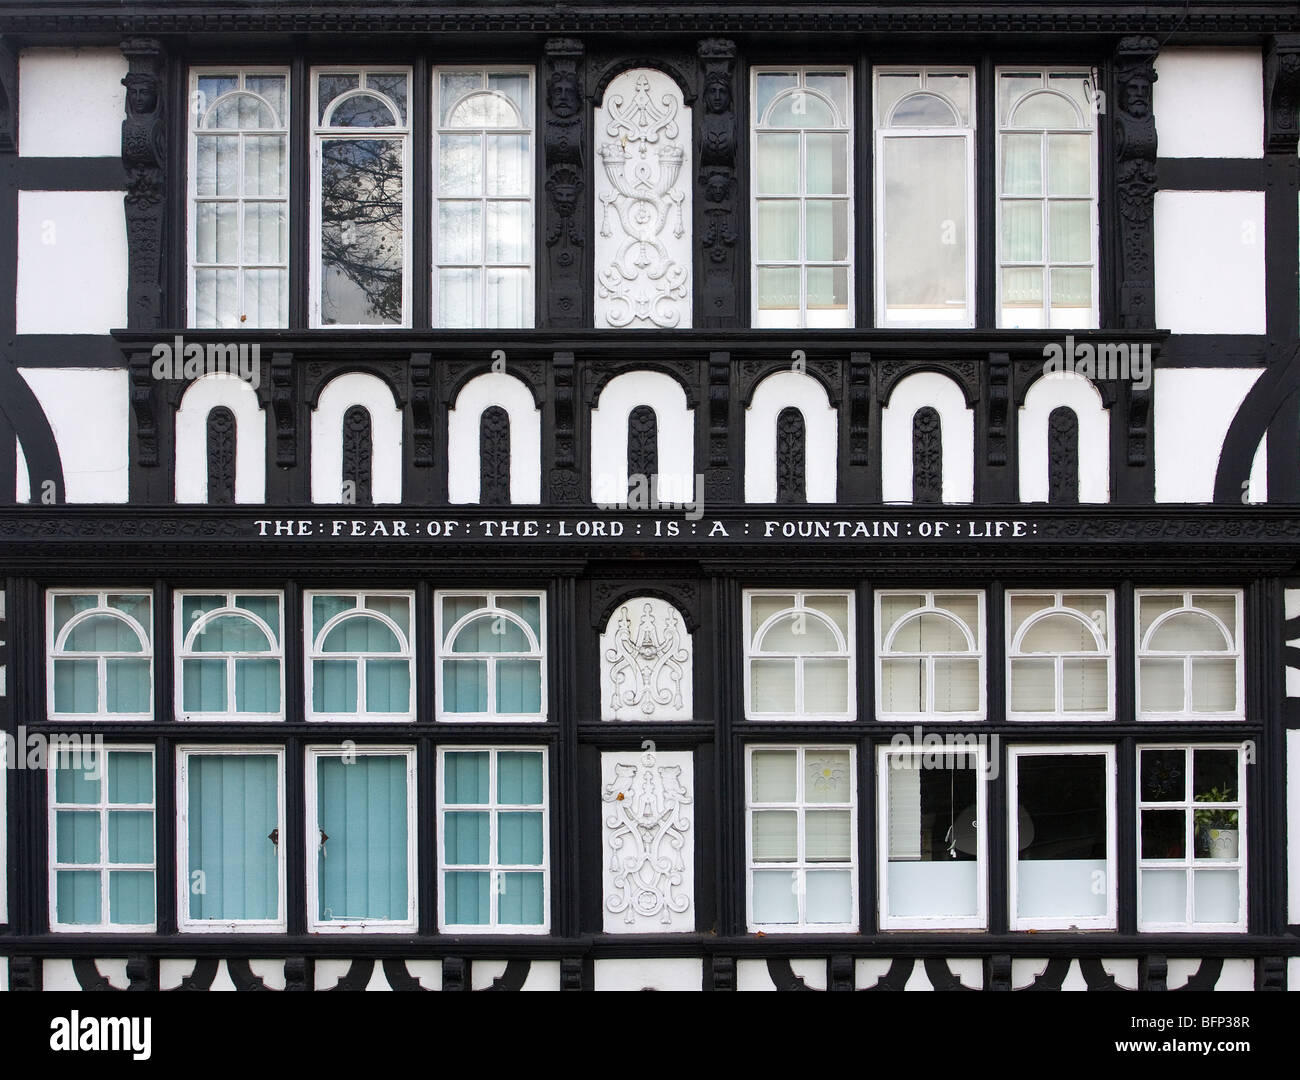 Facade of house dated 1881 in Chester with Biblical quotation from Proverbs 14:27 The Fear of the Lord Is A Fountain - Stock Image